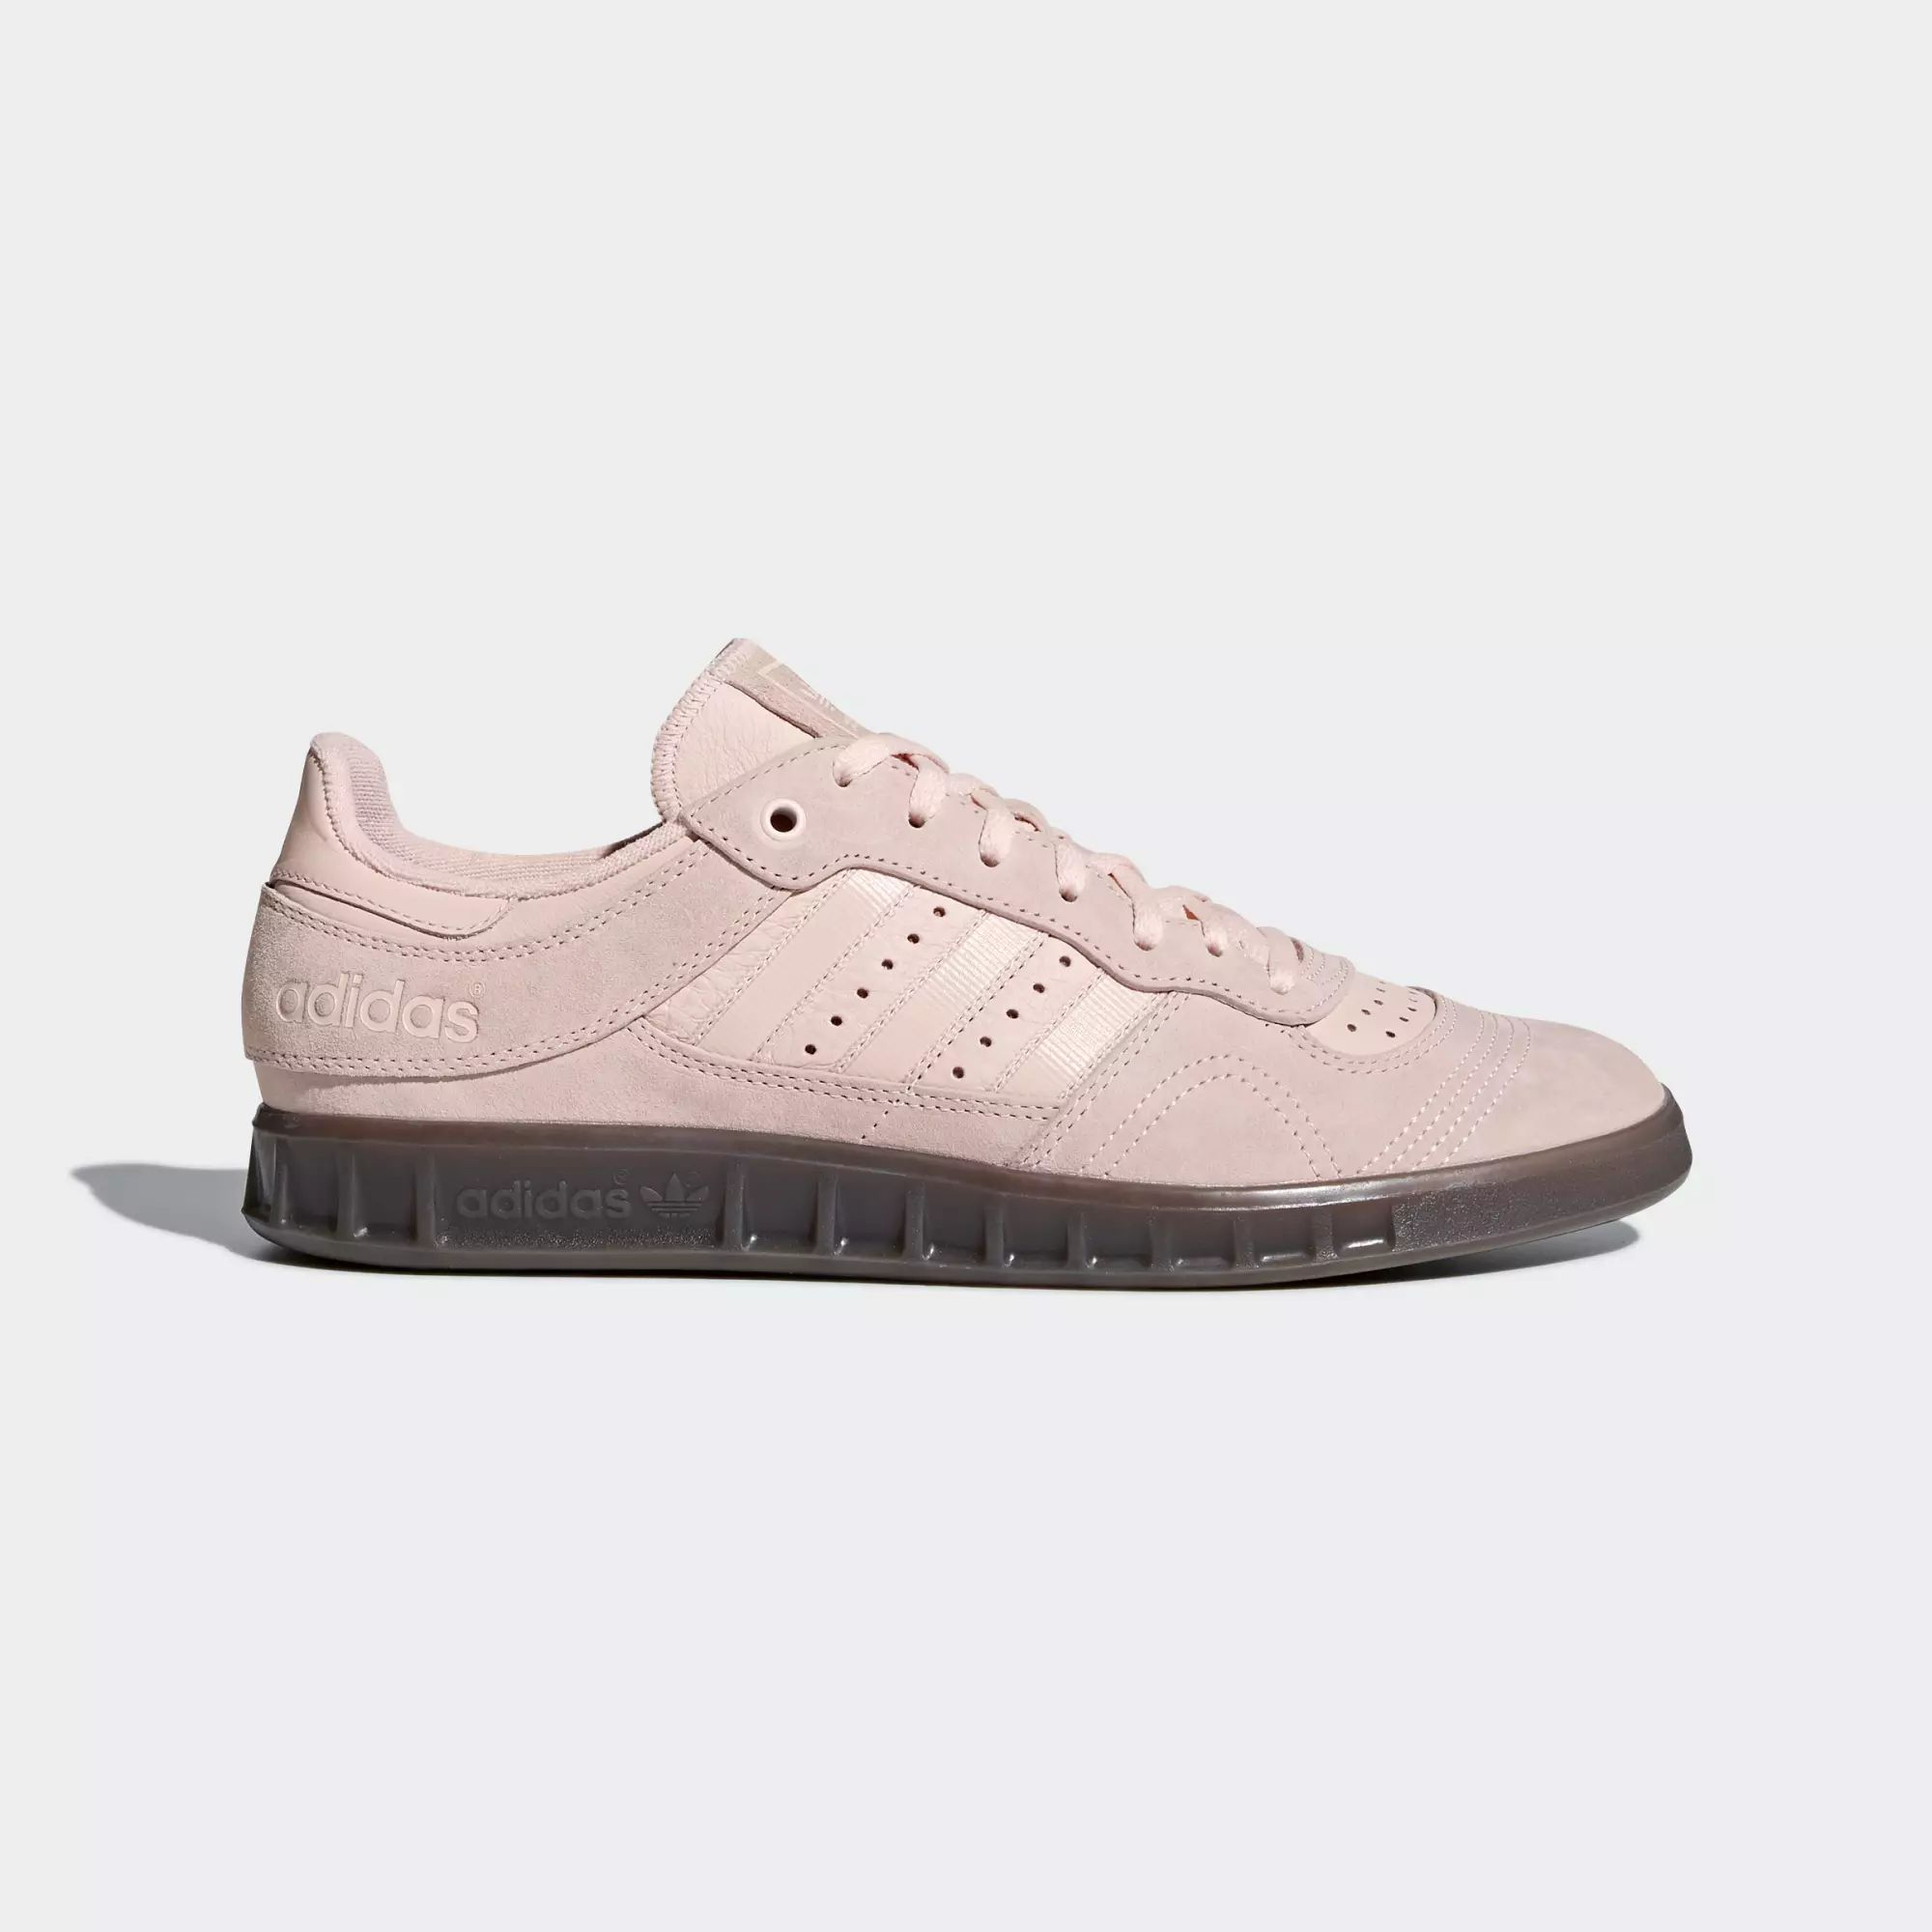 Adidas Handball Top Shoes - Icey Pink / Icey Pink / Gum